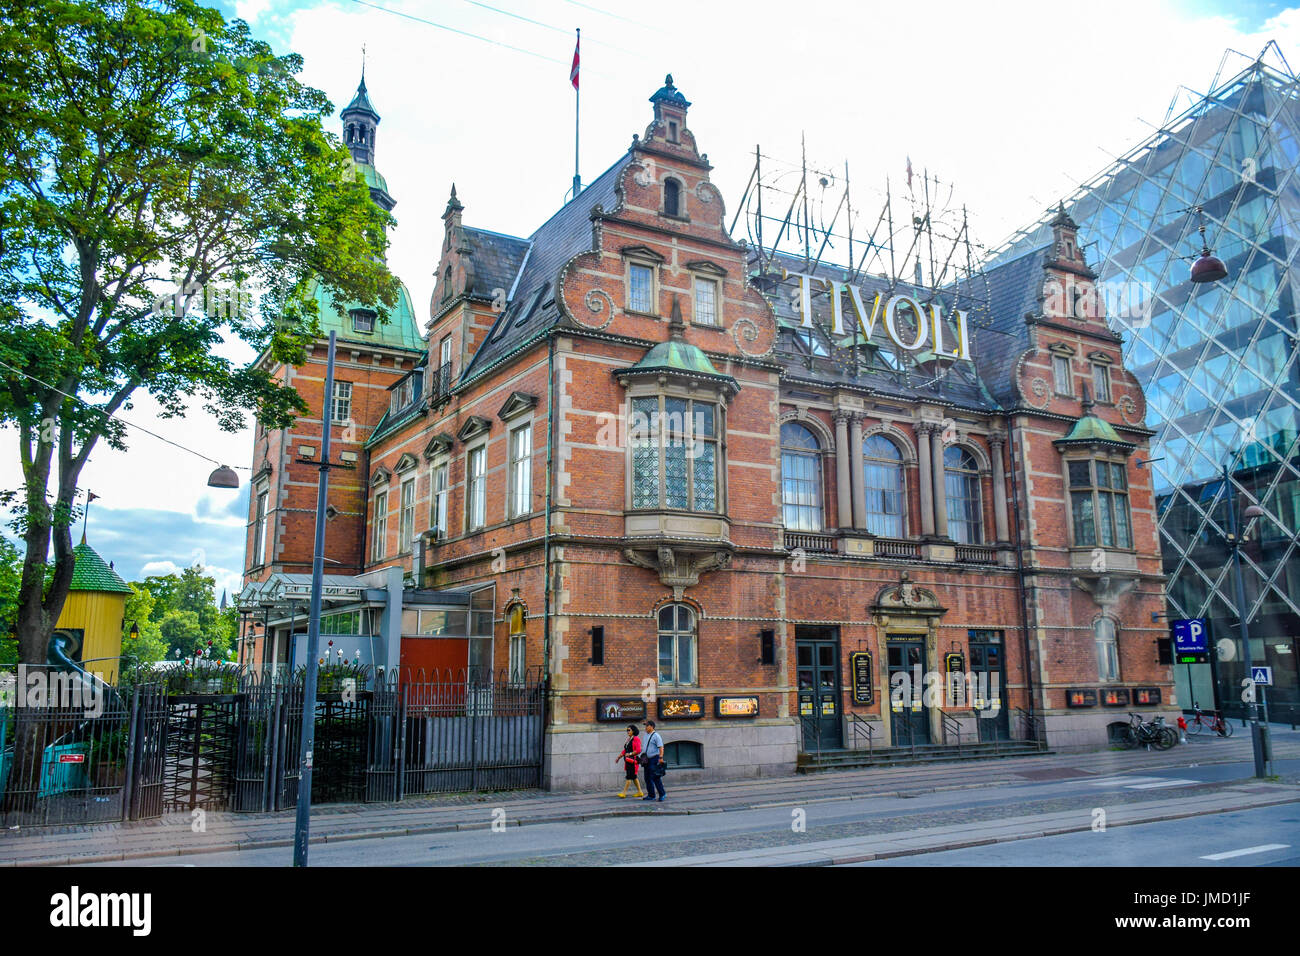 Tivoli Amusement Park Aarhus Tivoli Park Stock Photos And Tivoli Park Stock Images Alamy